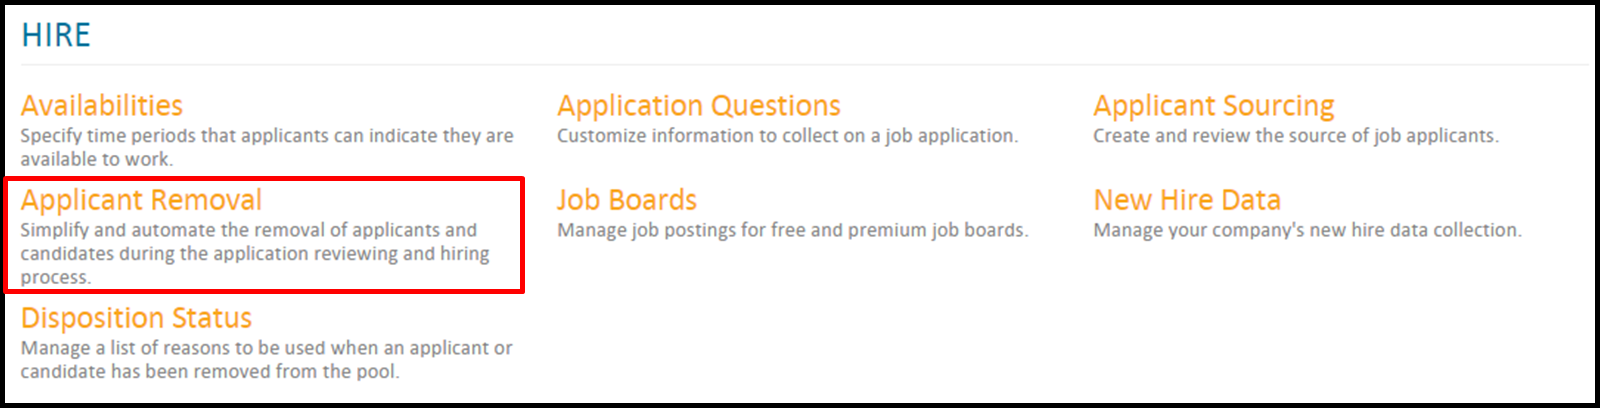 Applicant Removal: How do I set up auto-removal settings for